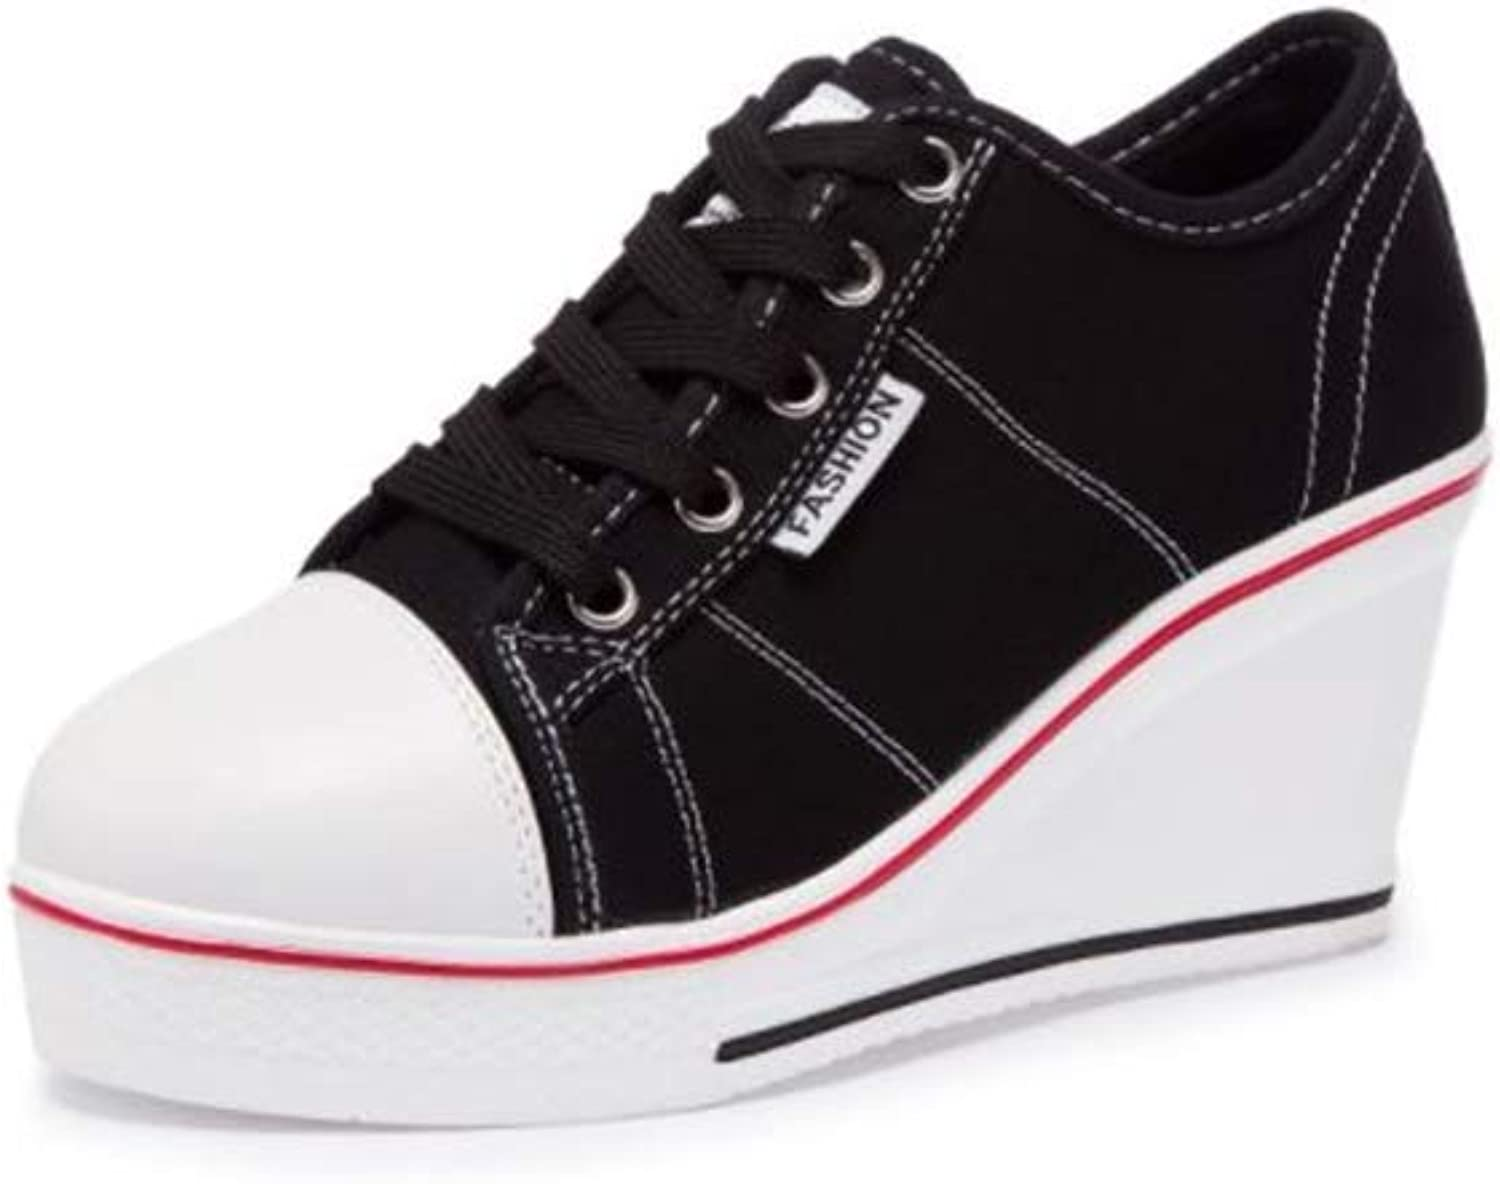 Women's Casual Canvas Wedges shoes Mid Heels Lace up Fashion Sneakers